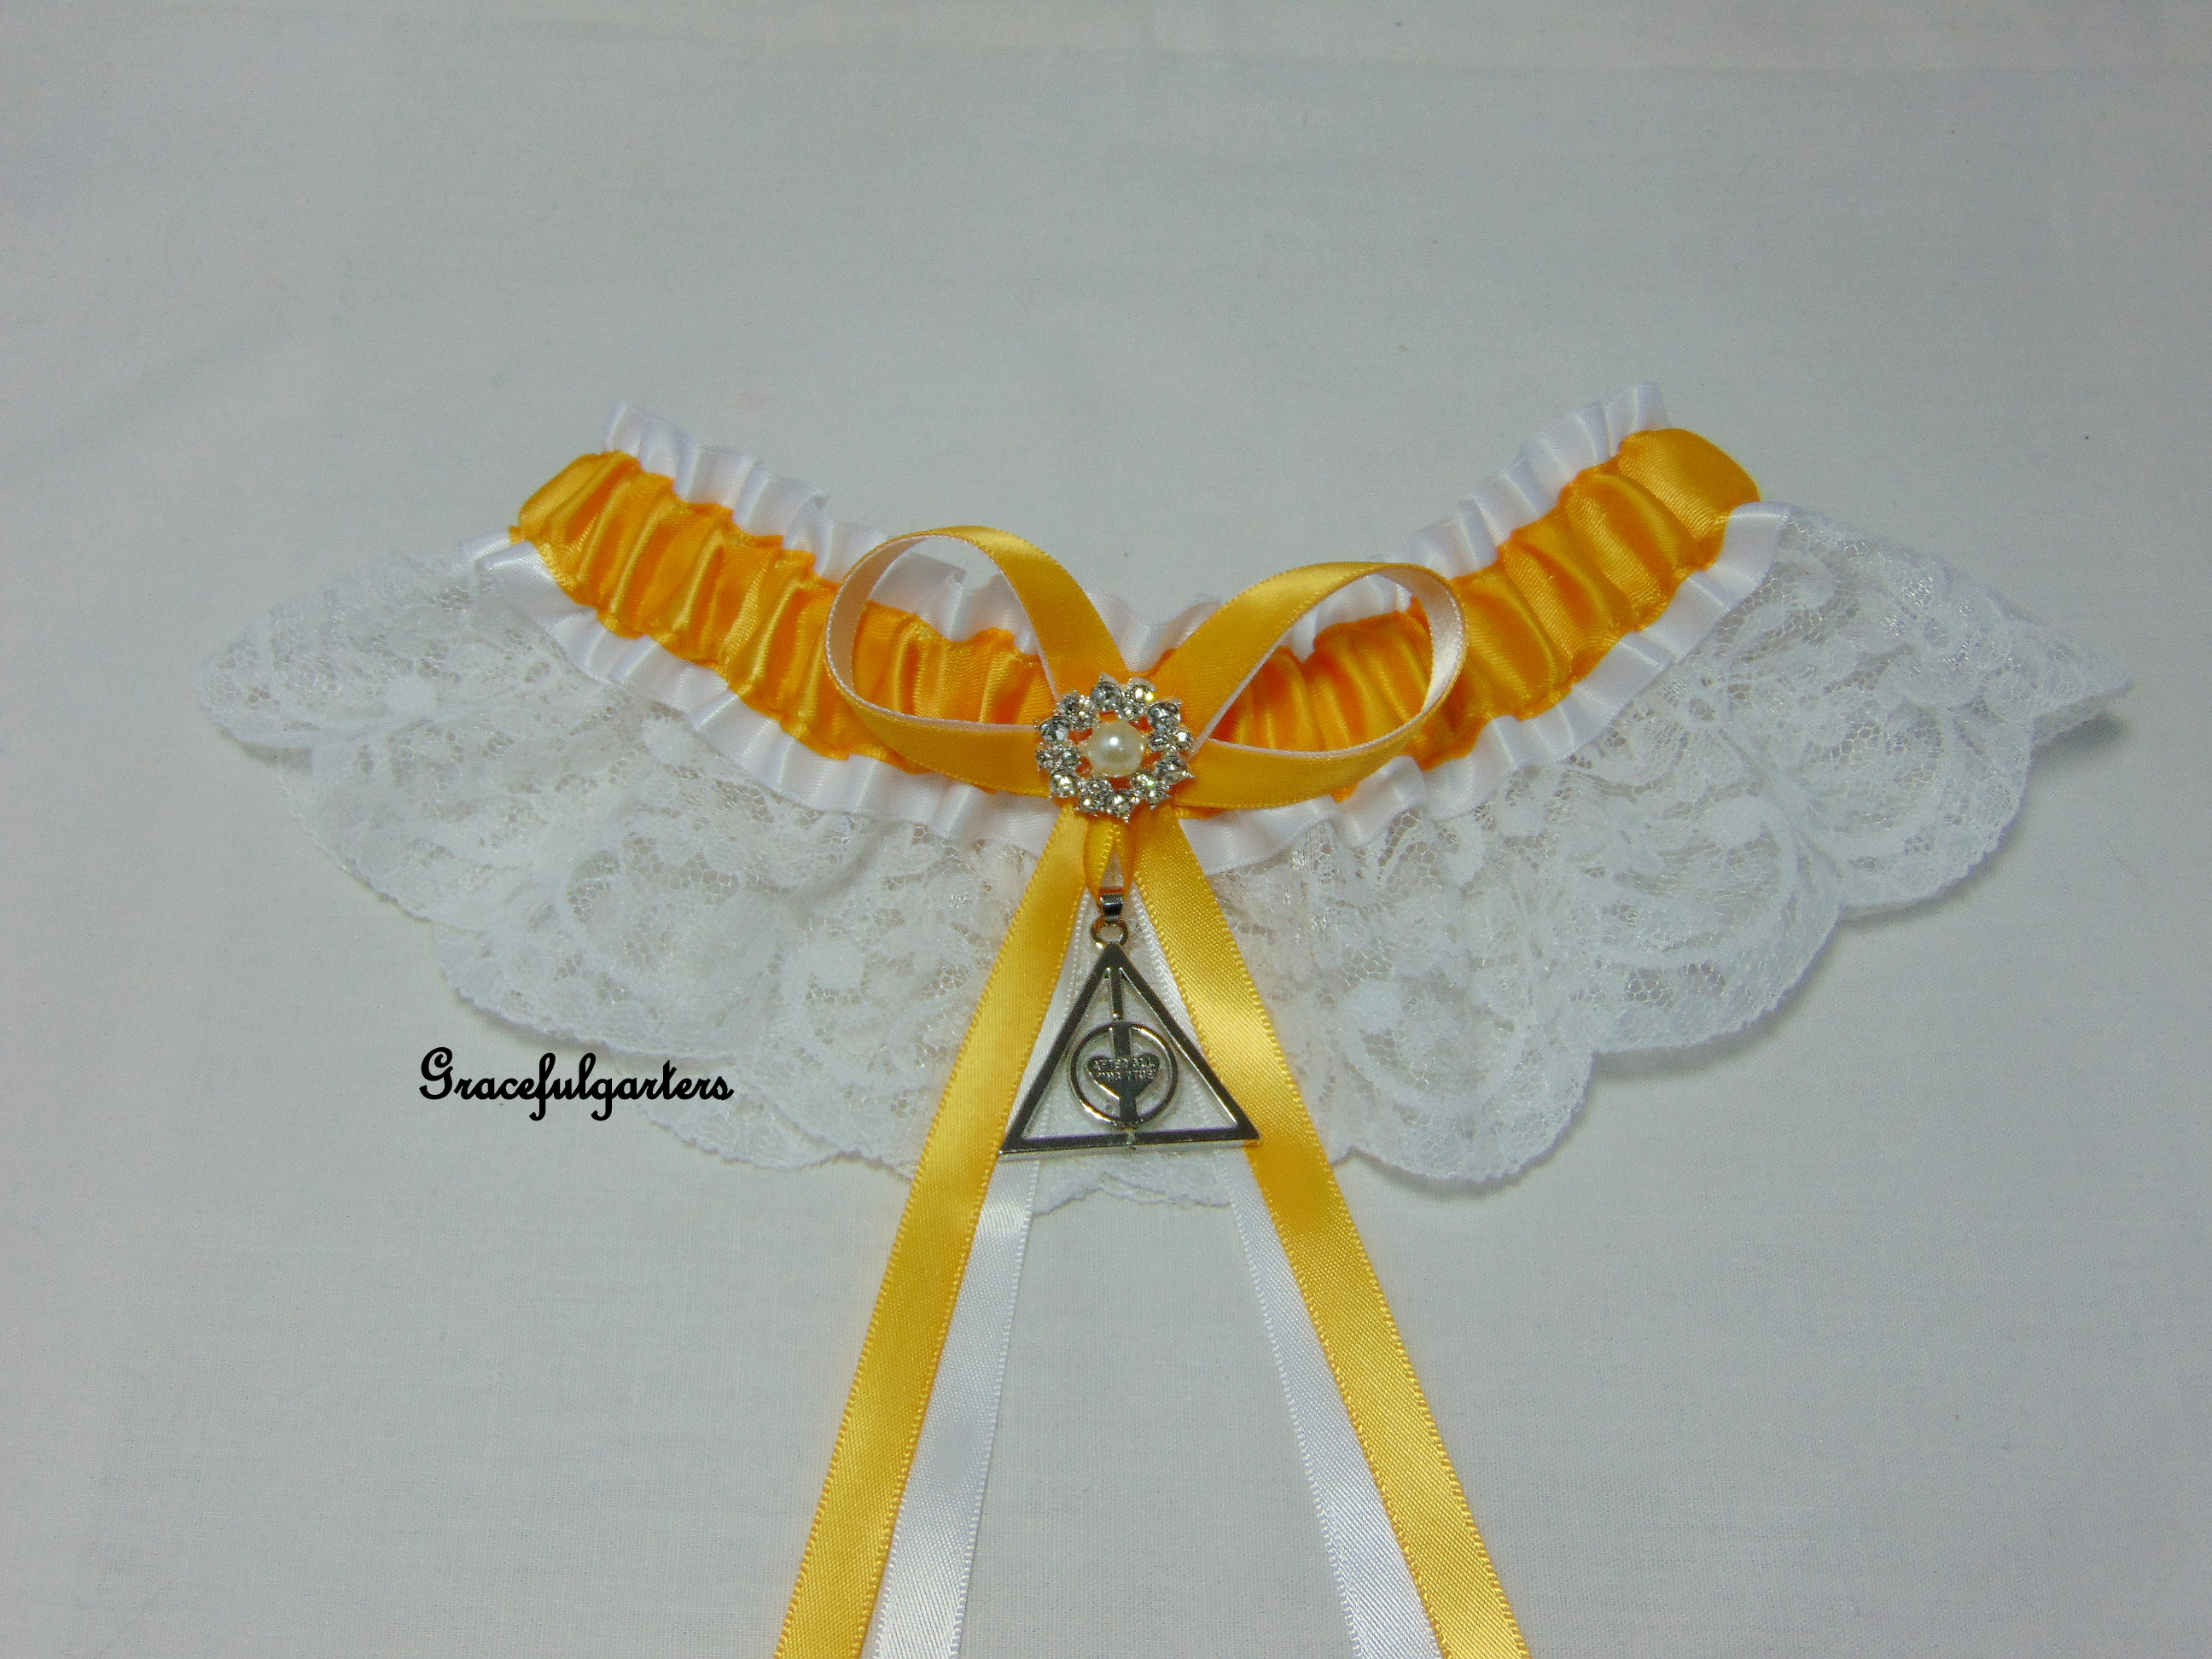 Harry Potter Deathly Hallows Always After All This Time Lace Wedding Garter.